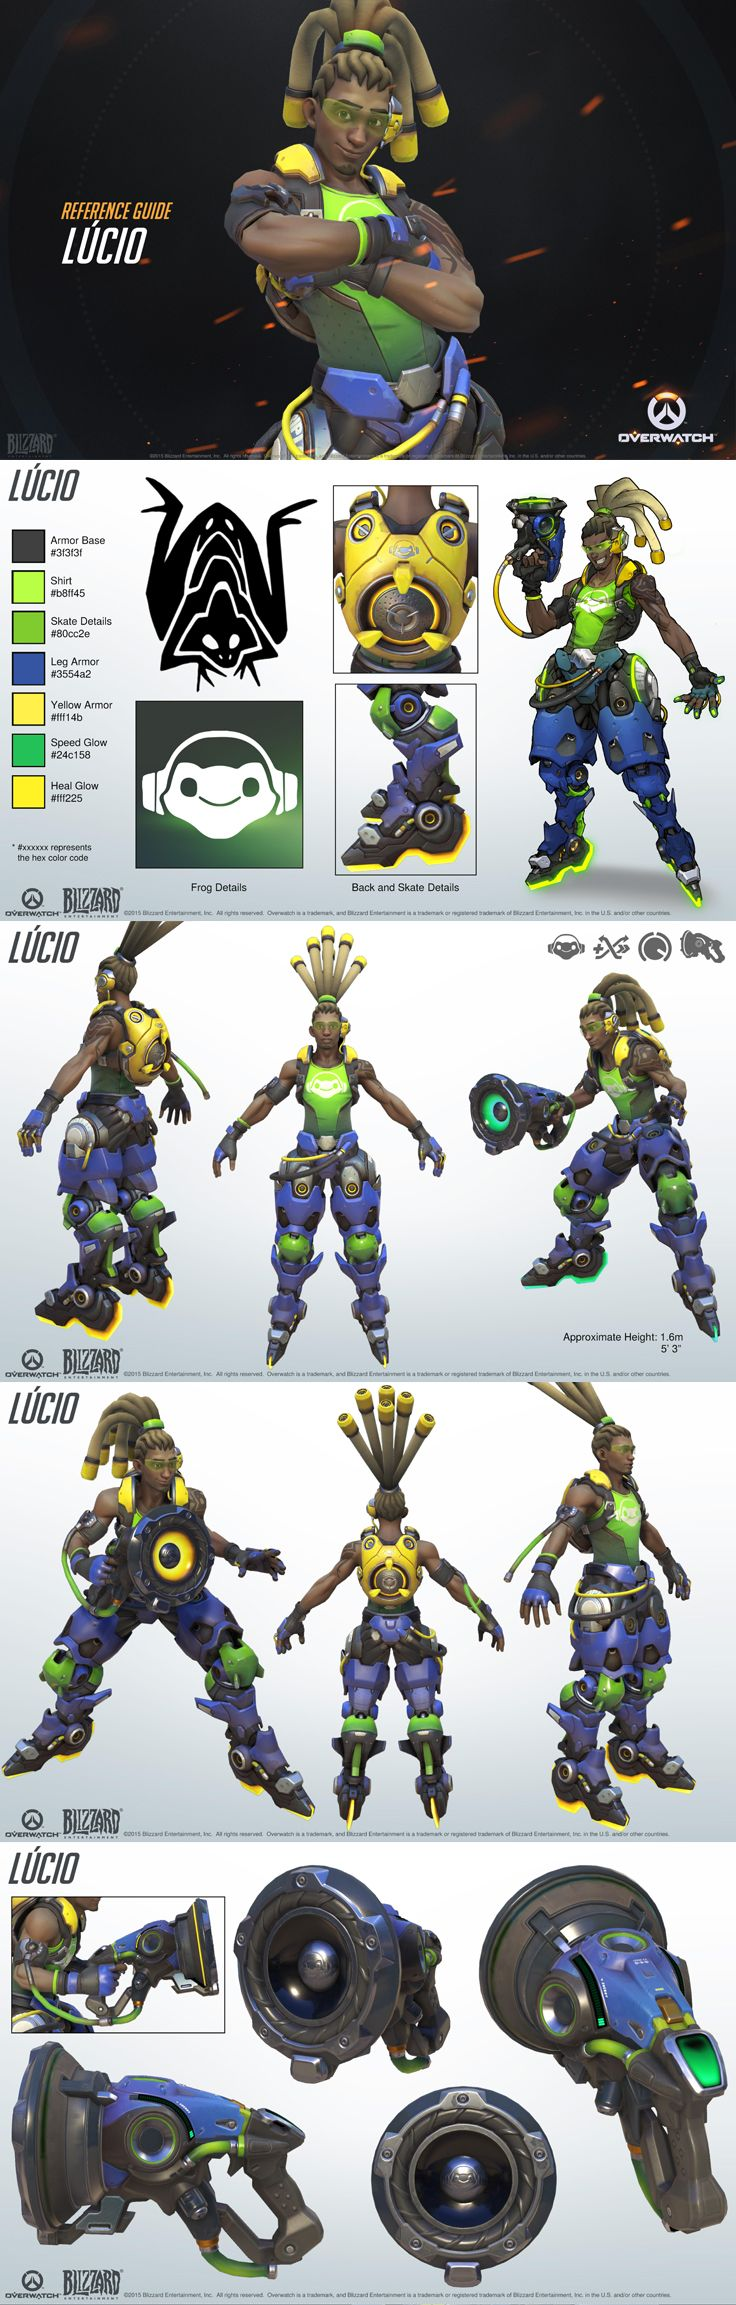 Lucio Reference Guide